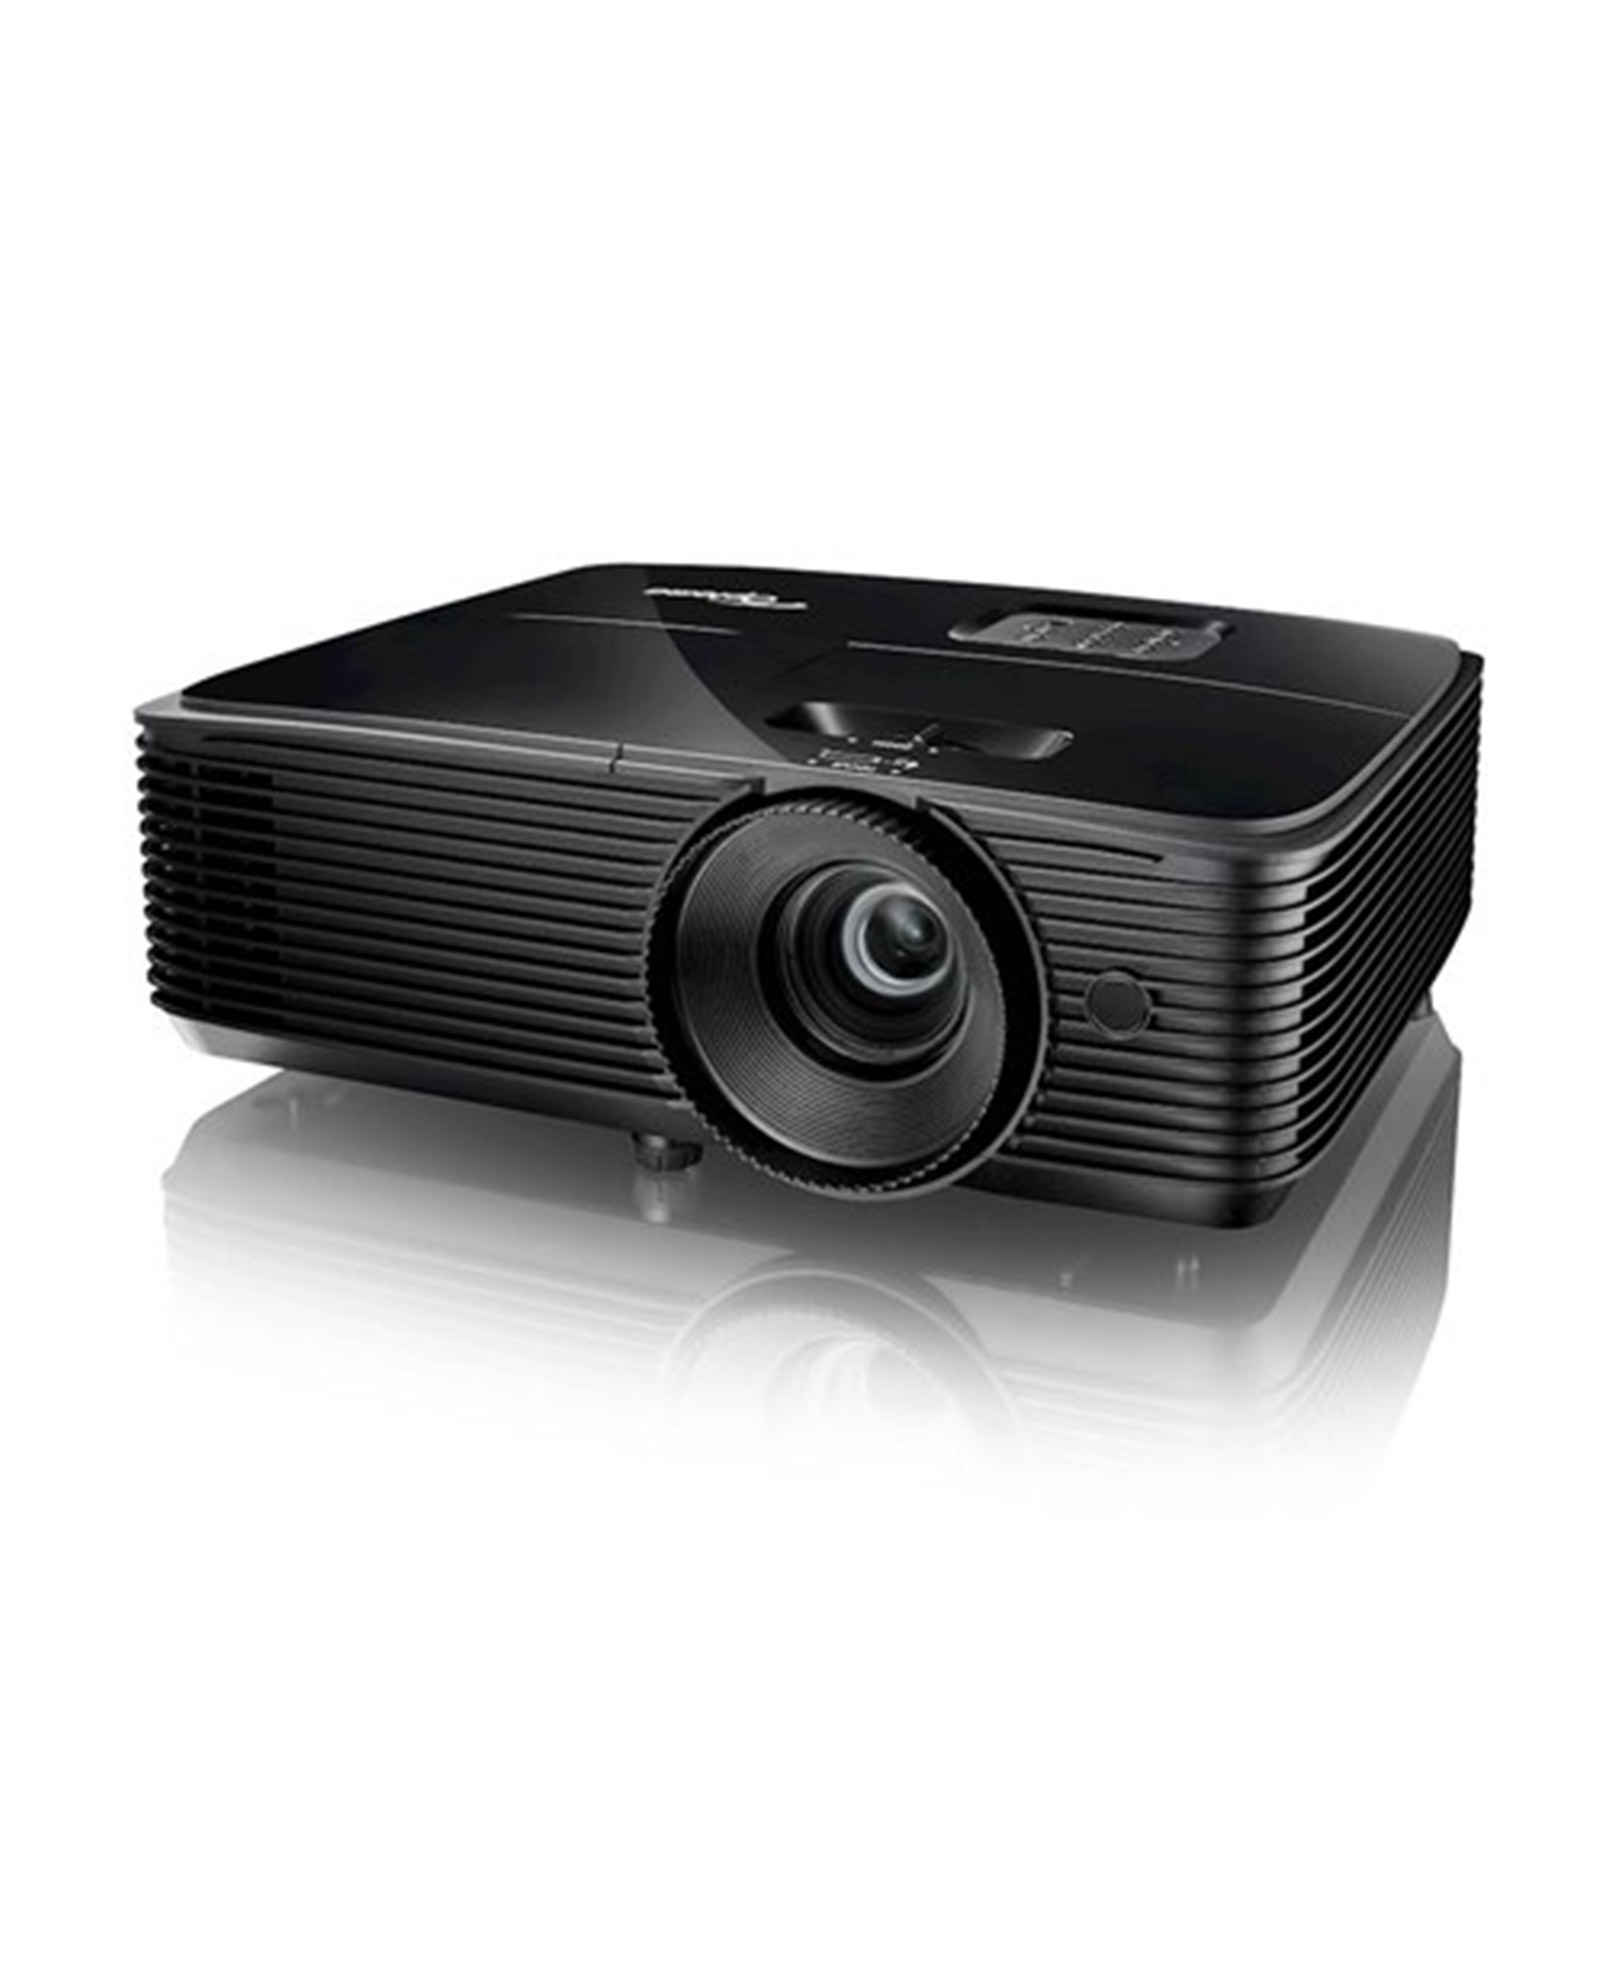 Optoma Hd28e 3800lm 1080p 30000 1 Home Entertainment Projector 3